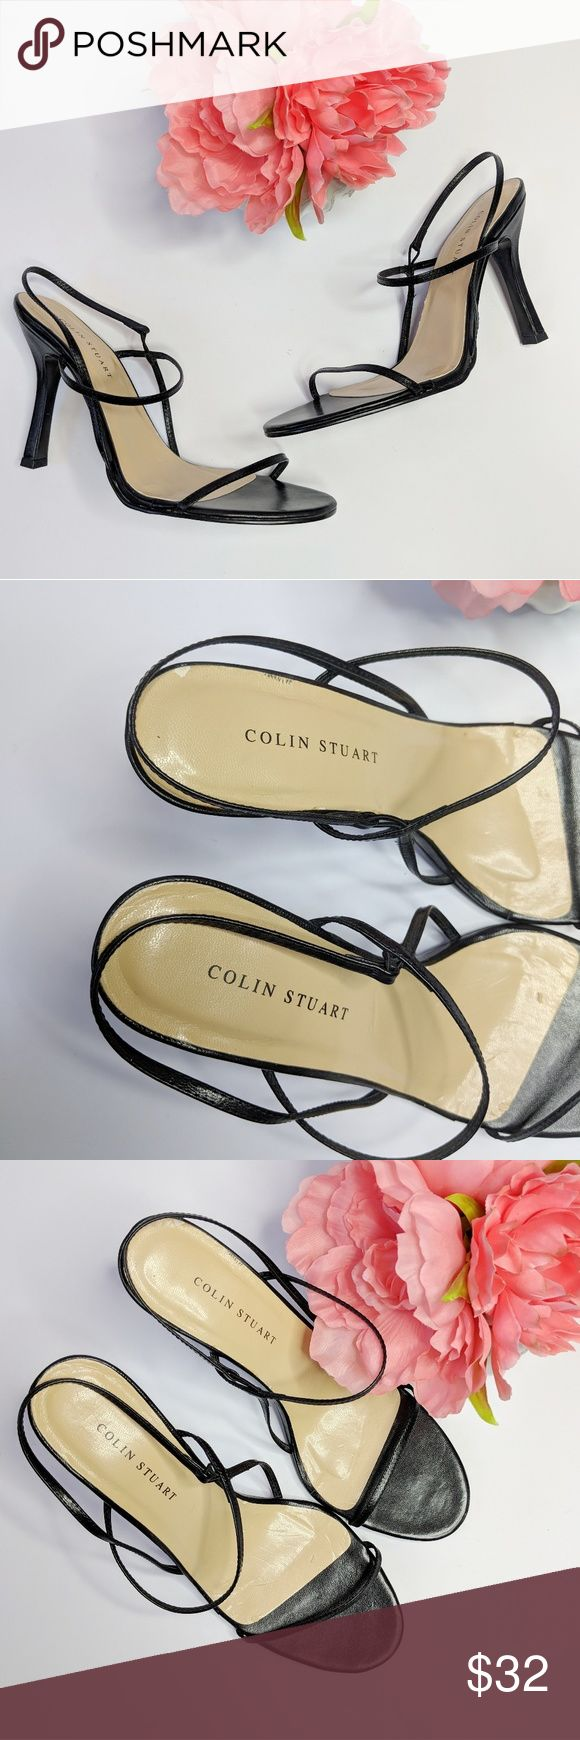 COLIN STUART • strappy black leather heels Colin Stuart heels, thin straps over toe and around Ankle. Elastic at ankle for comfort and stretch.  Black leather upper. Manmade sole. Heel height approximately 4 inches. Excellent condition with minimal wear to sole. Colin Stuart Shoes Heels